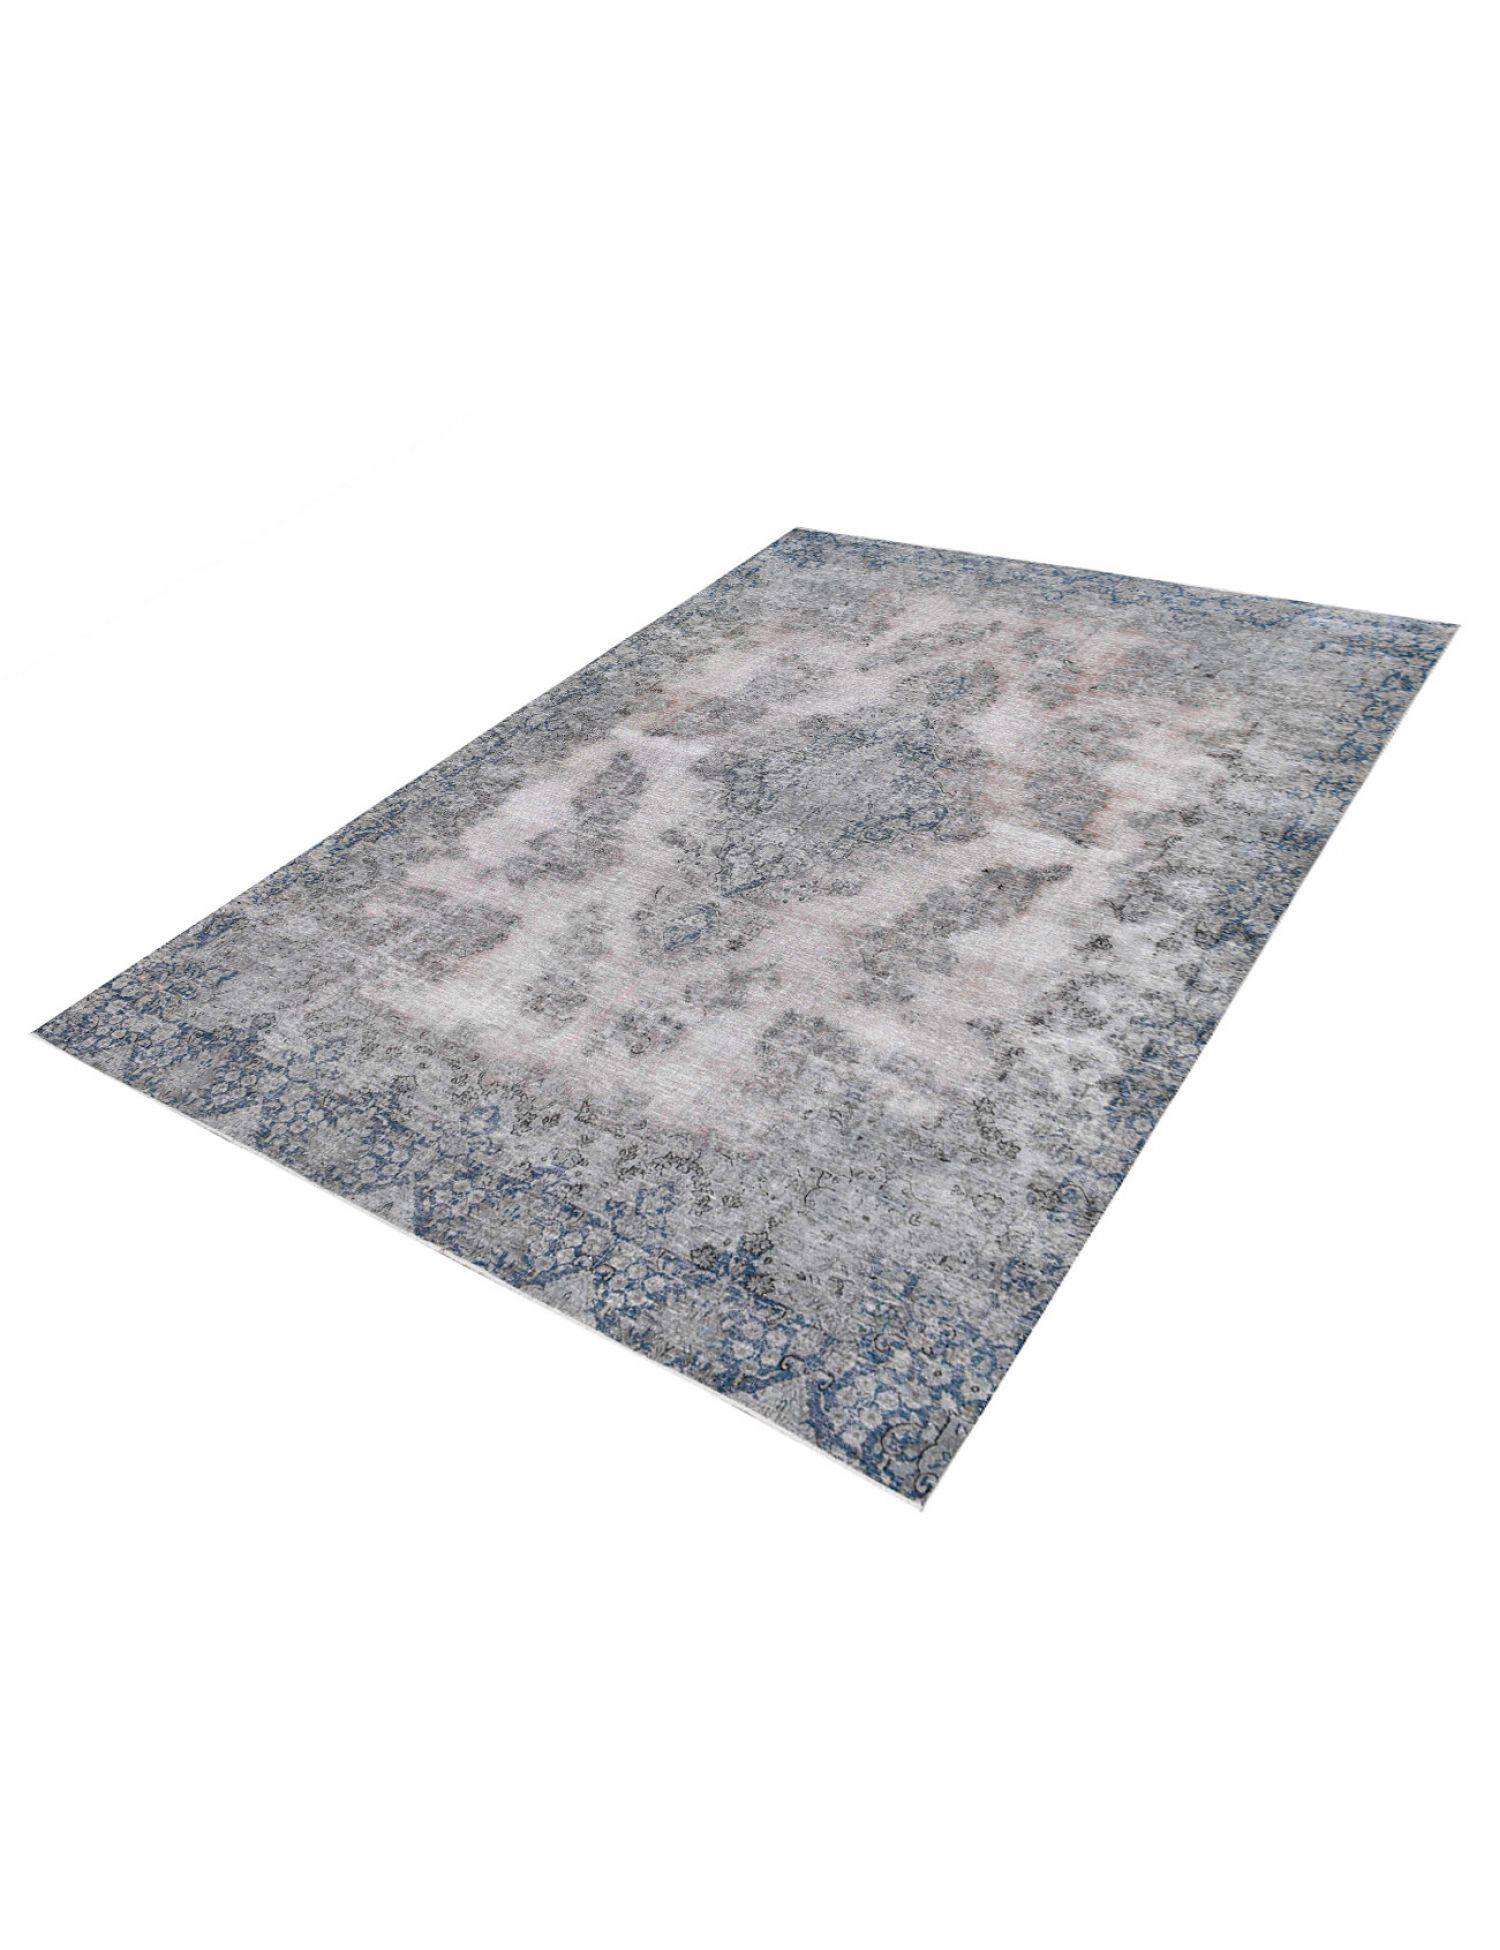 Vintage Carpet  grey <br/>363 x 239 cm